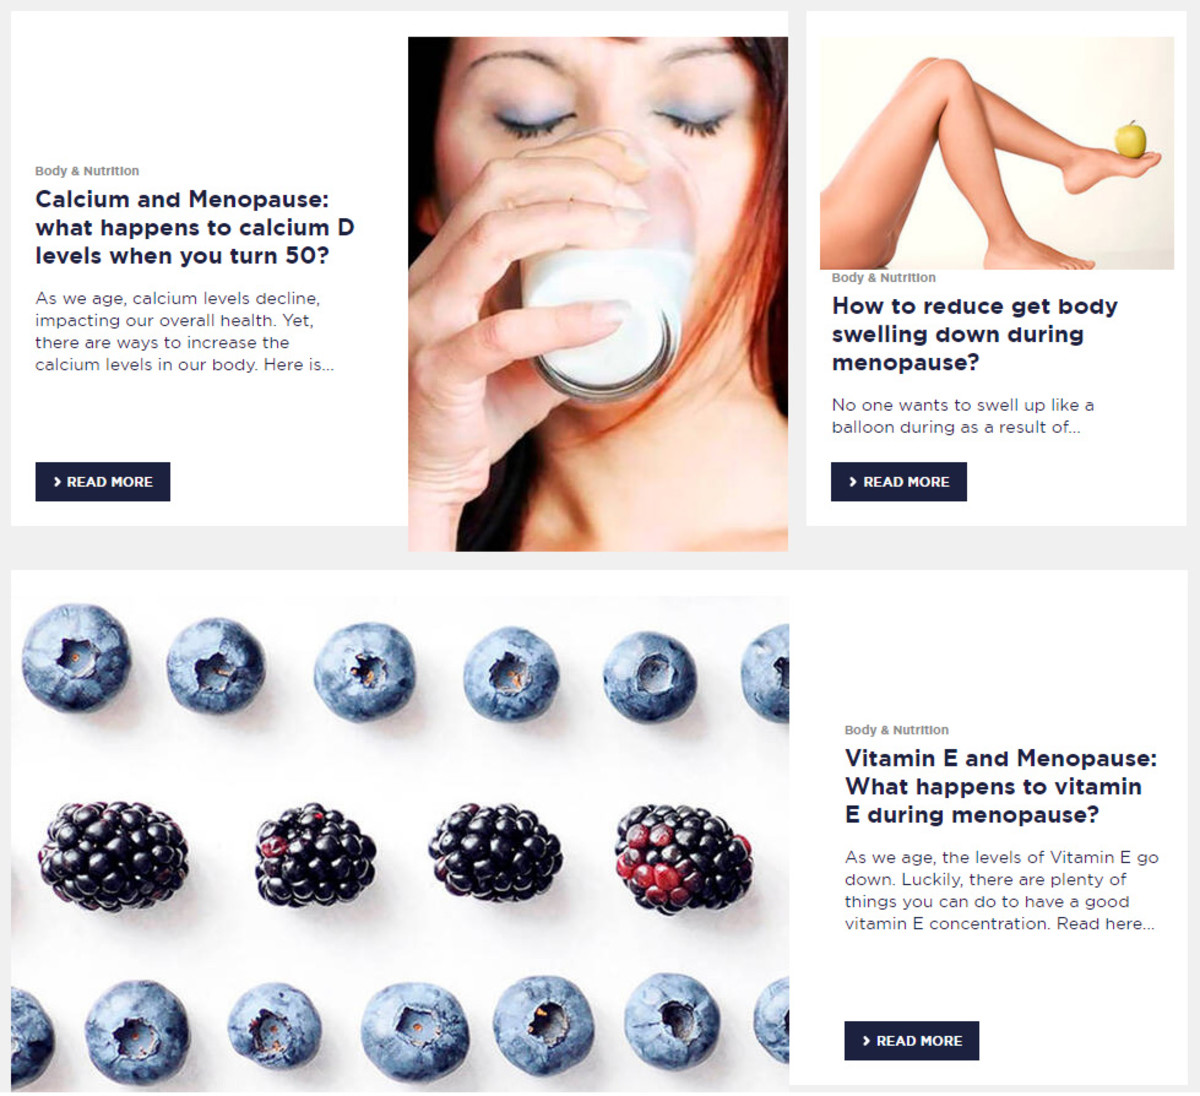 Vichy's No Pause at Menopause microsite features actually helpful advice written by experts